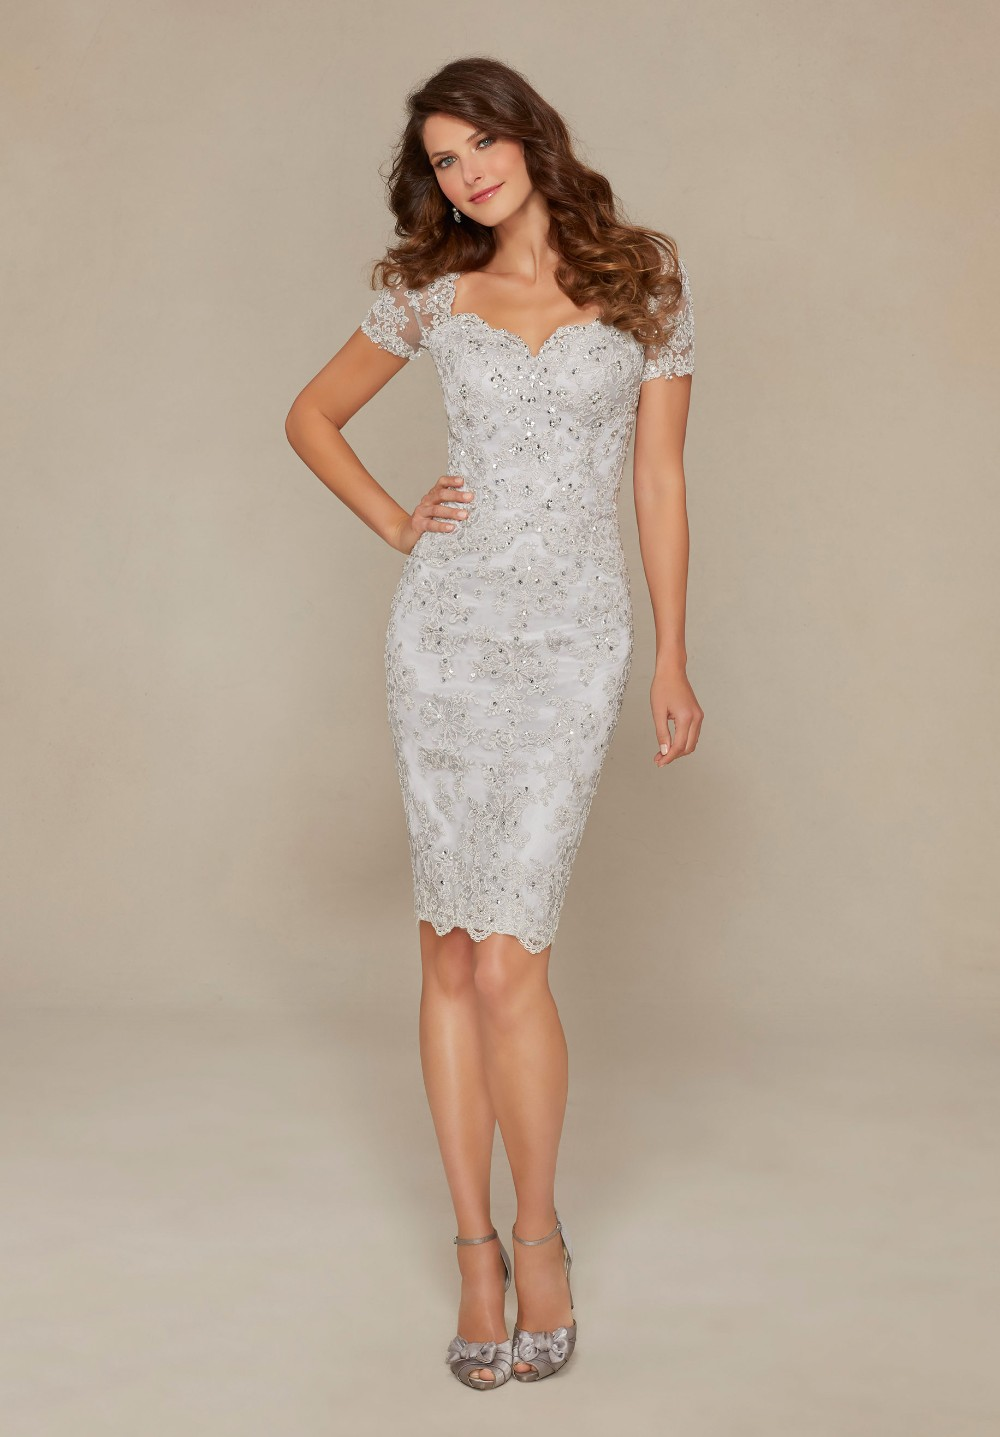 c7b3caffed Silver Knee Length Mother Of The Bride Dresses - Gomes Weine AG